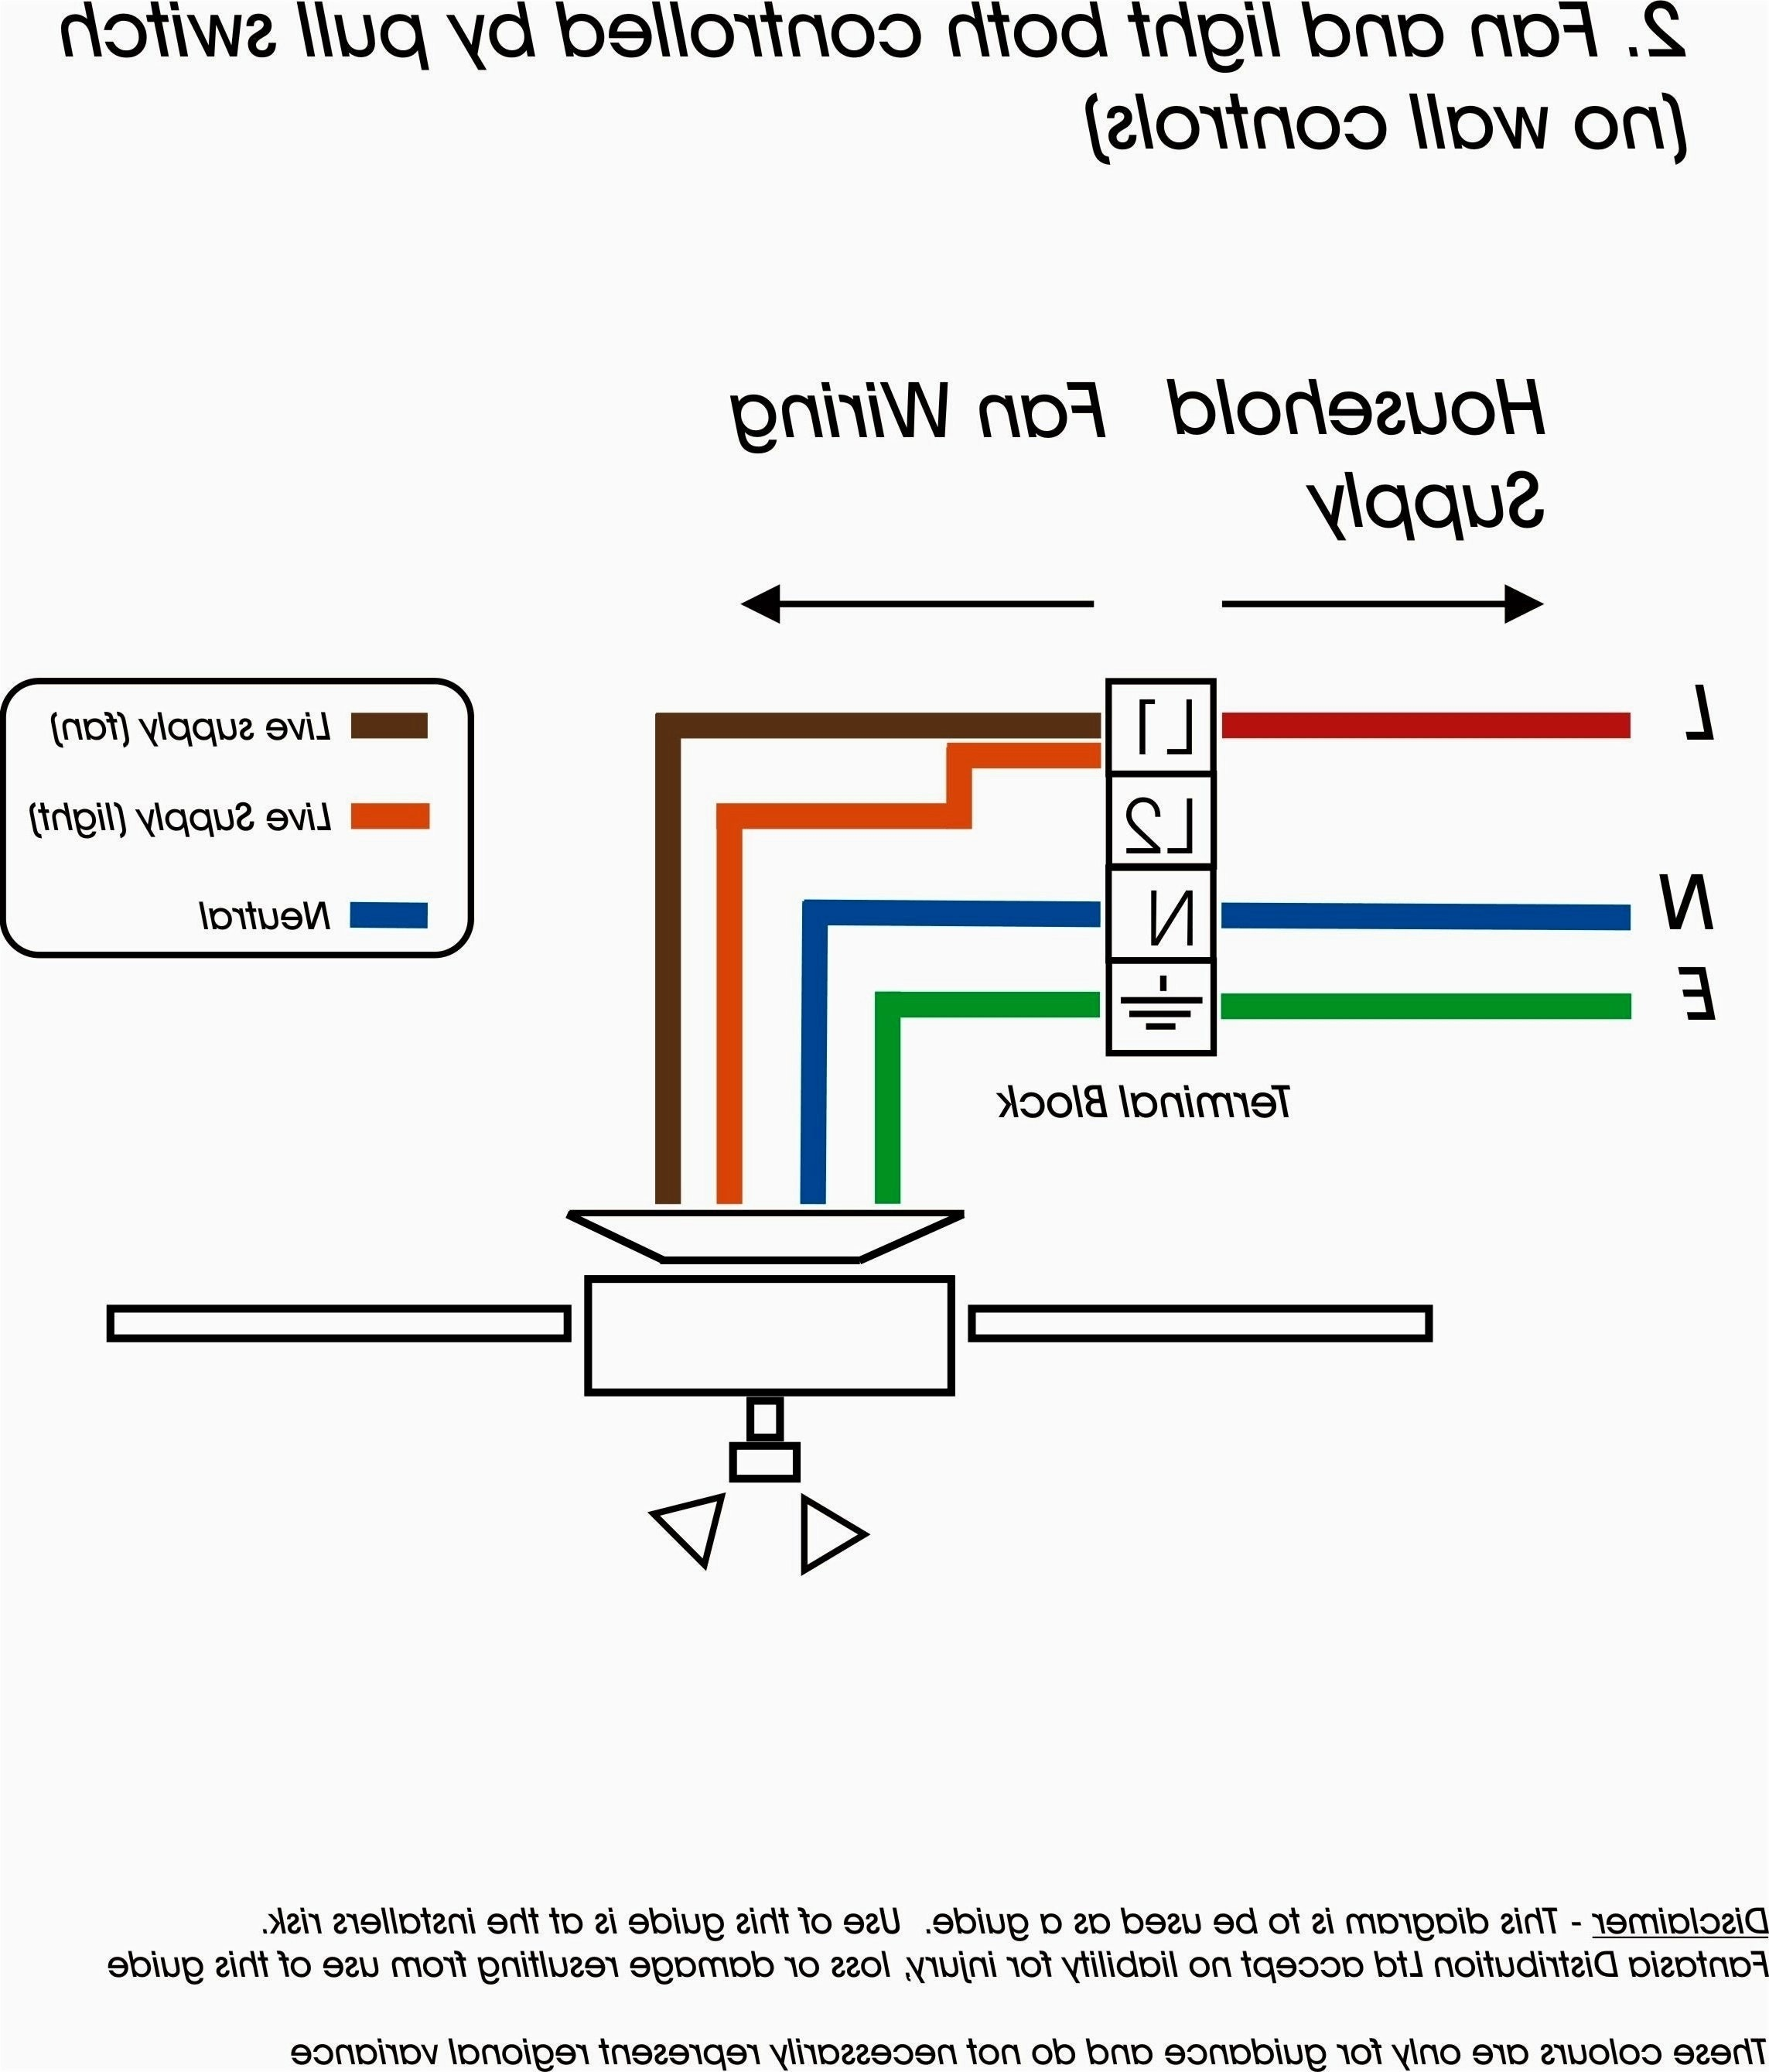 Wiring for orbit with Well Pump Ao 4797] Wiring Diagram for orbit Sprinkler Timer Free About Of Wiring for orbit with Well Pump